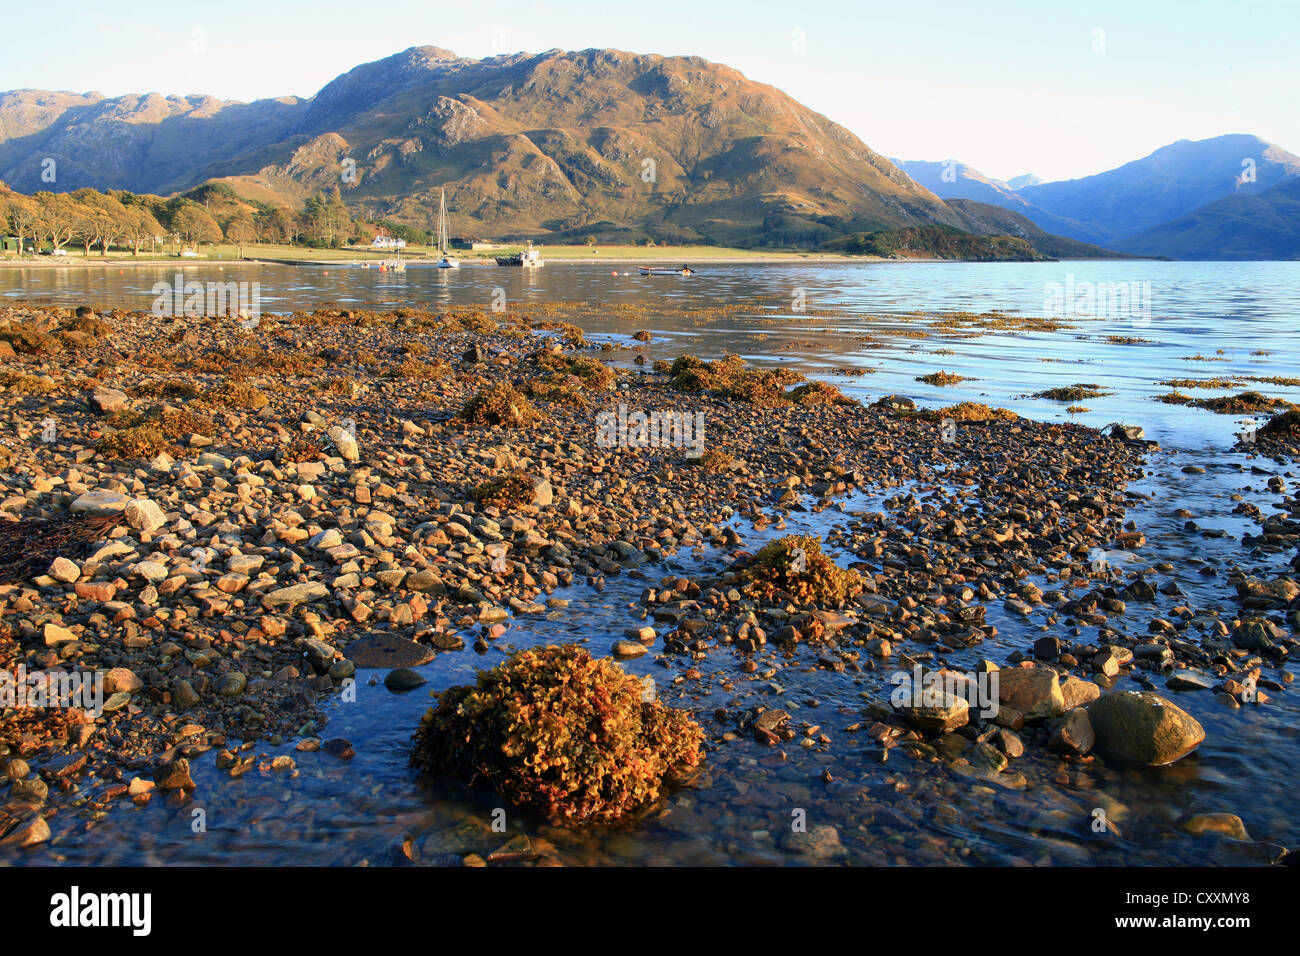 Sunset on the shore of Loch Hourn at Arnisdale in the Scottish Highlands. - Stock Image